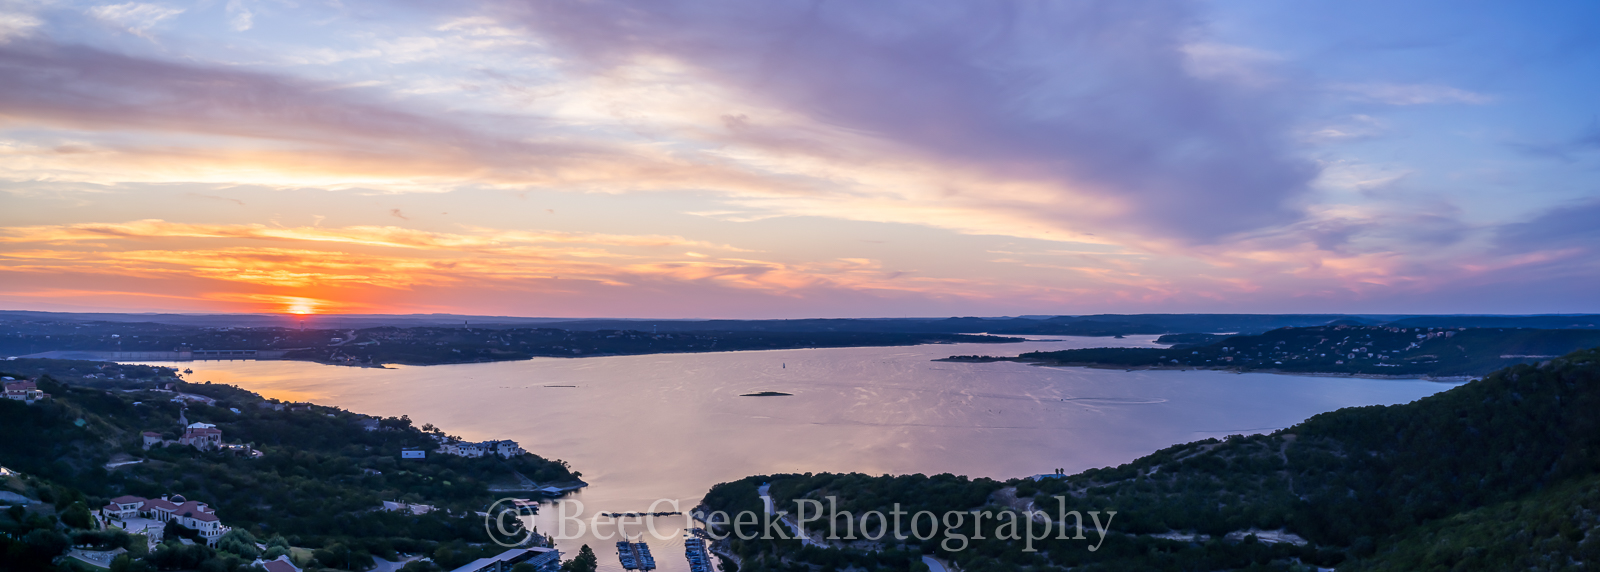 Austin, Hill Country, Lake Travis, pano, panorama, boat, boats, clouds, colors, glow, heavenly, orange, radiated, rays, scenic, spectactular, sunset, water, photo